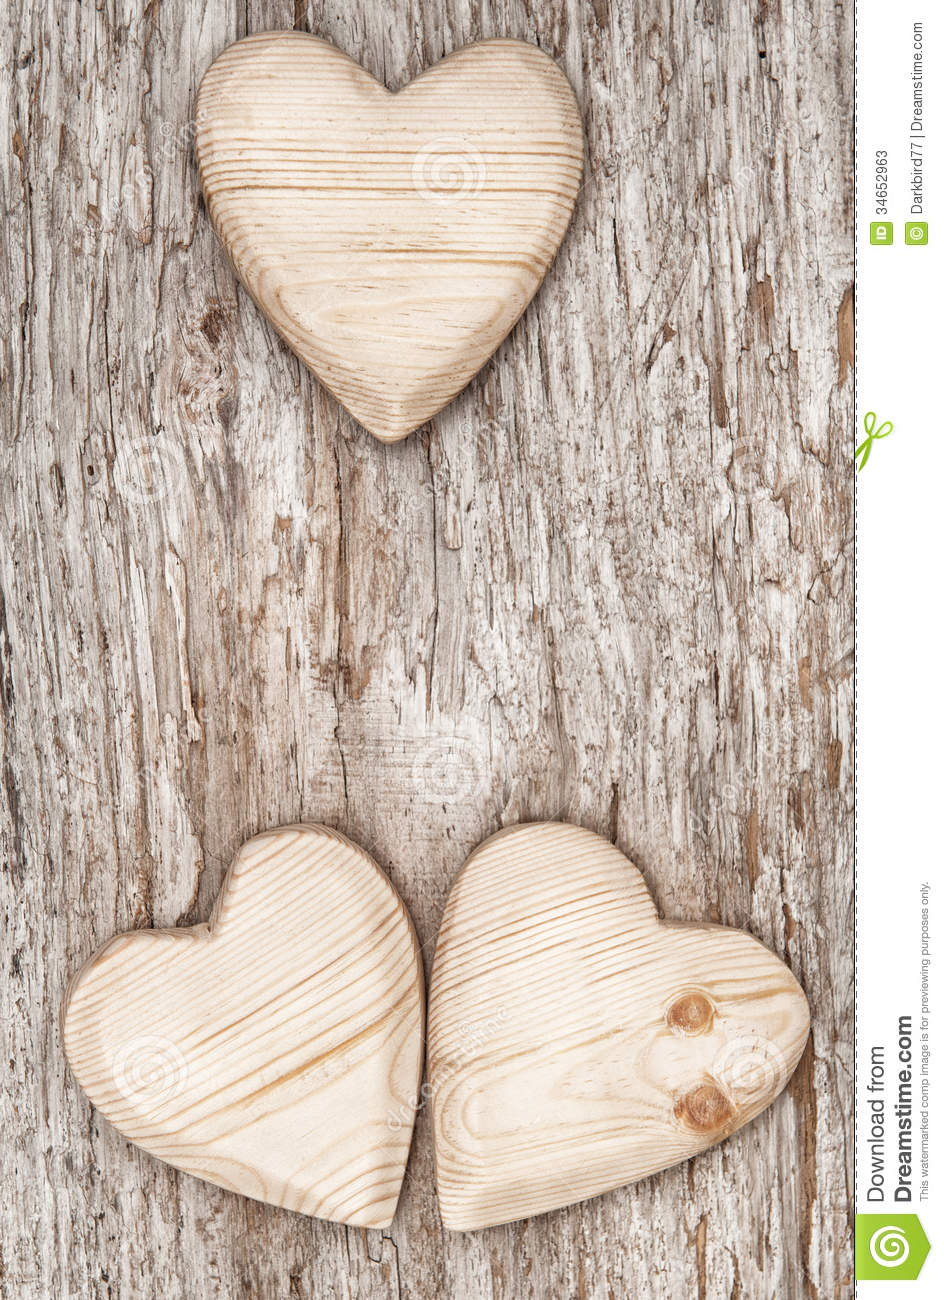 how to write on wooden hearts